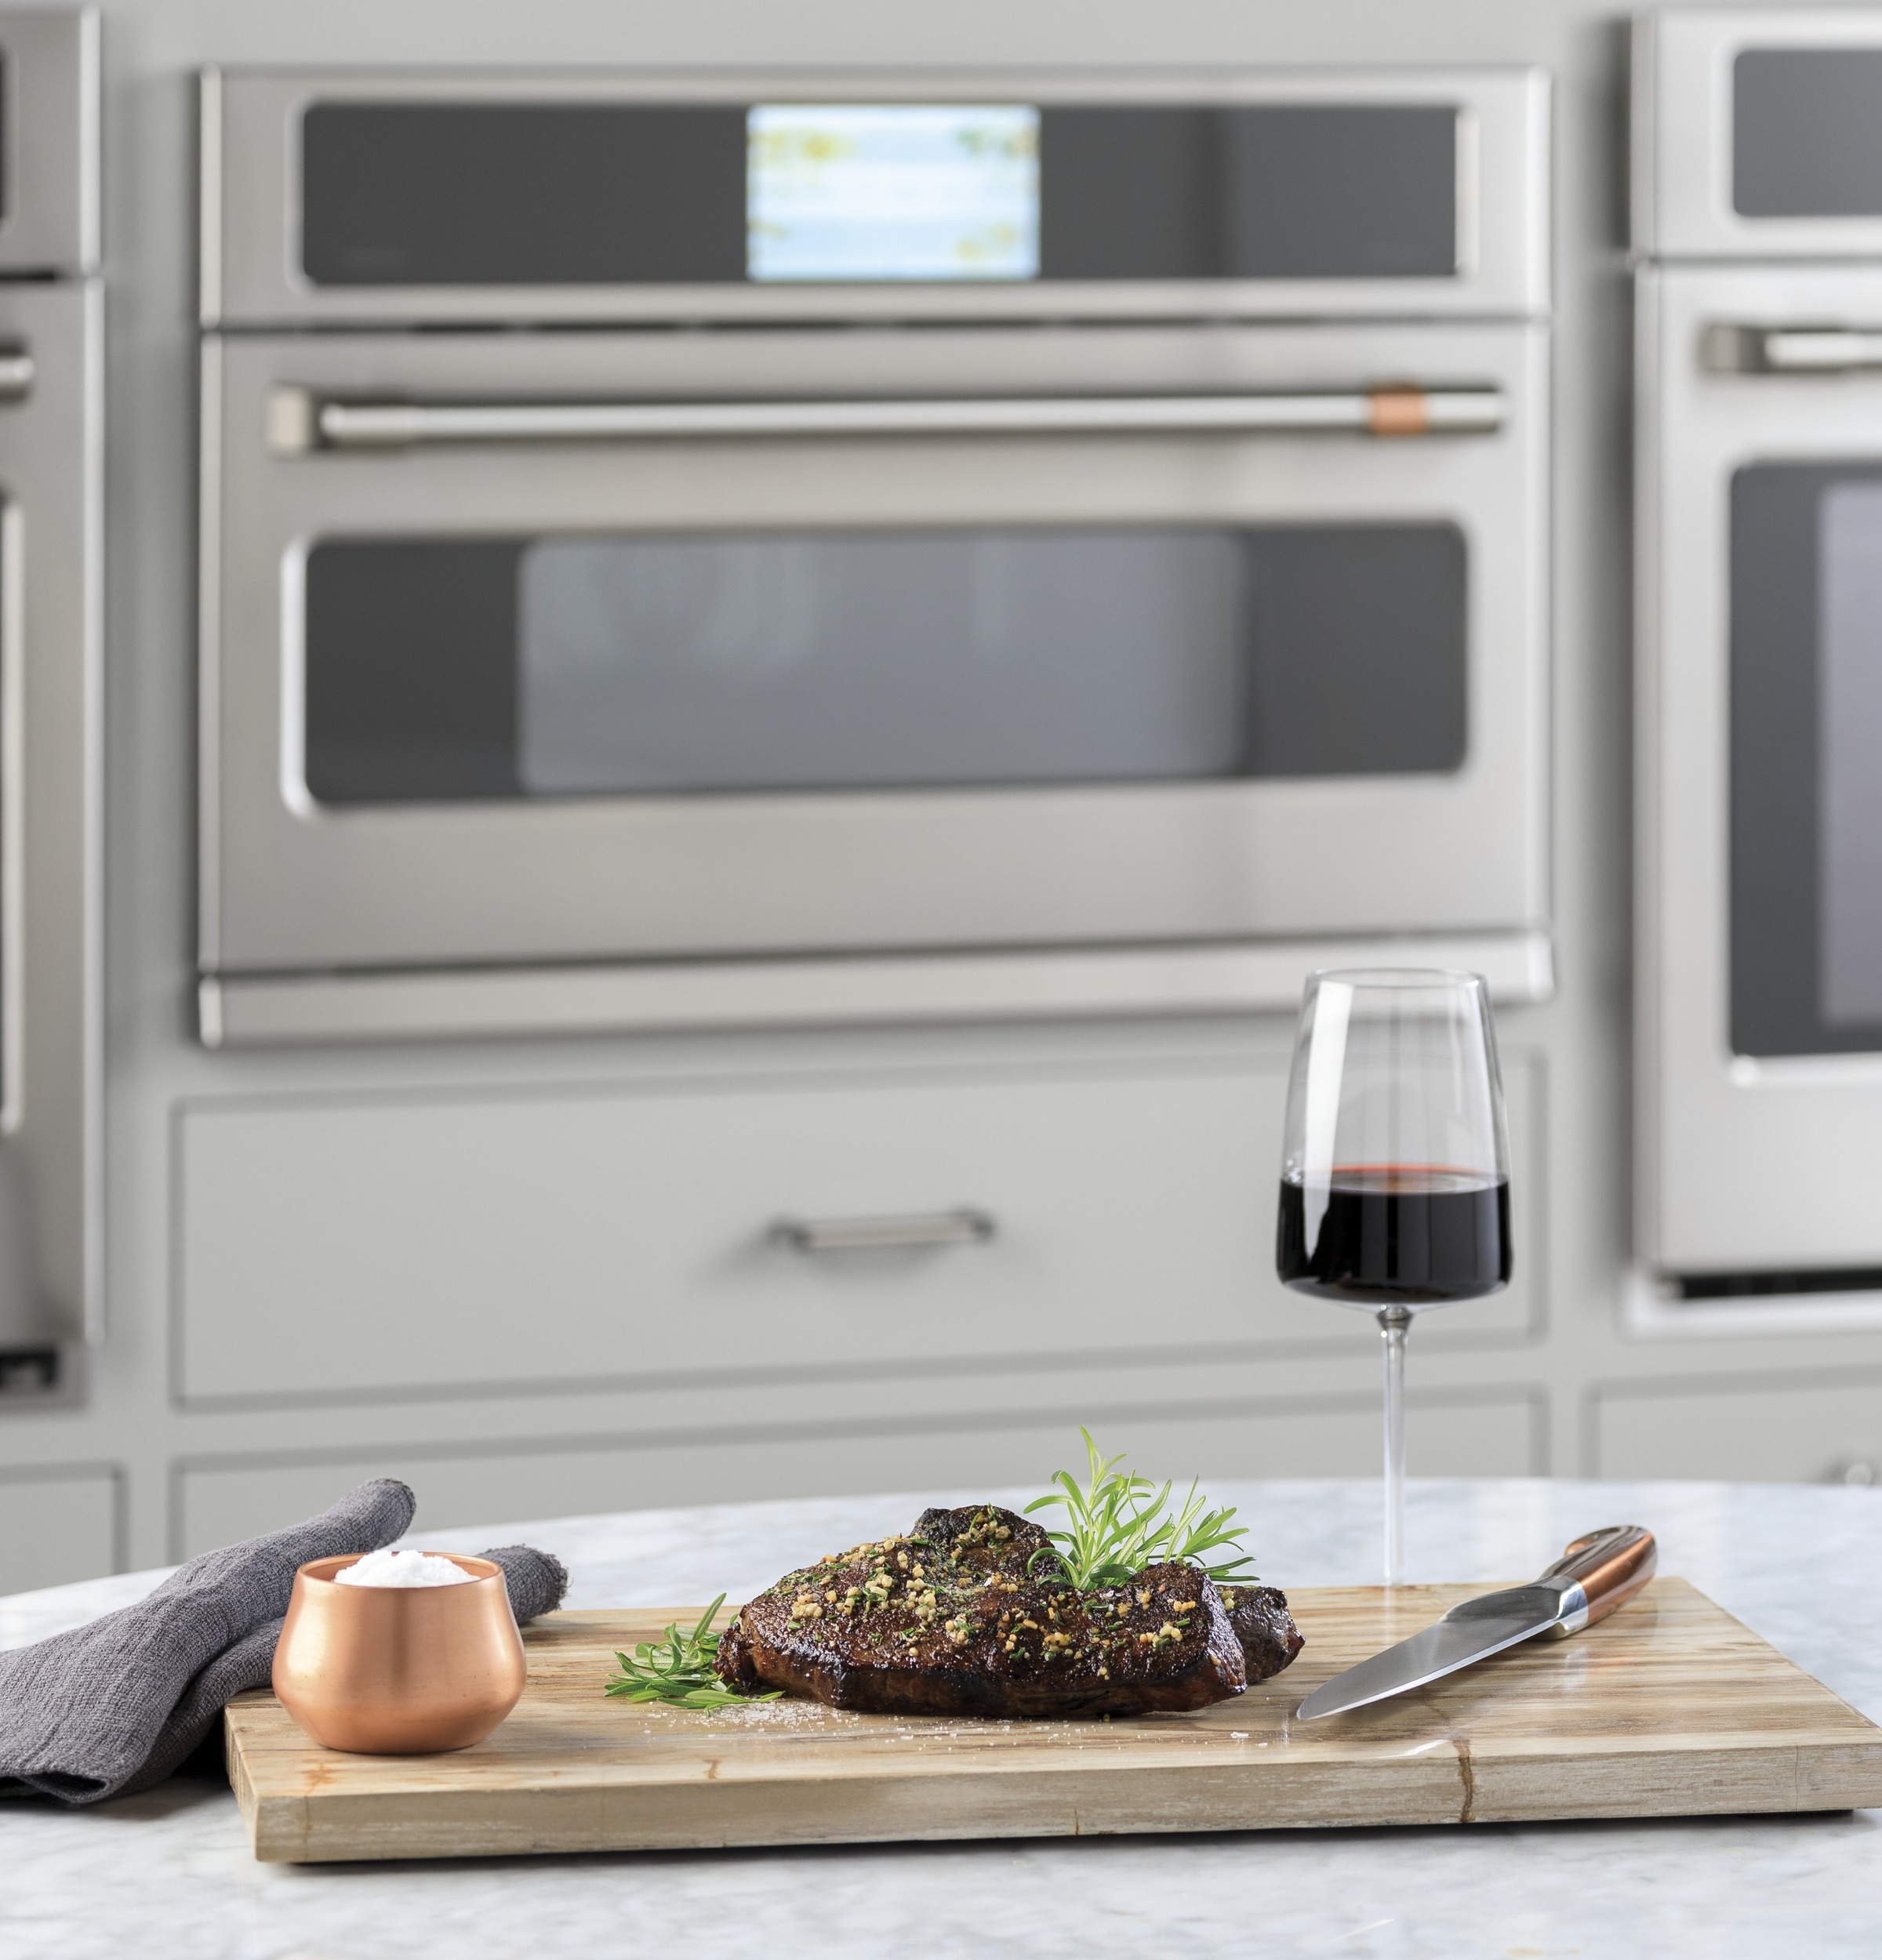 """Model: CSB913P4NW2 